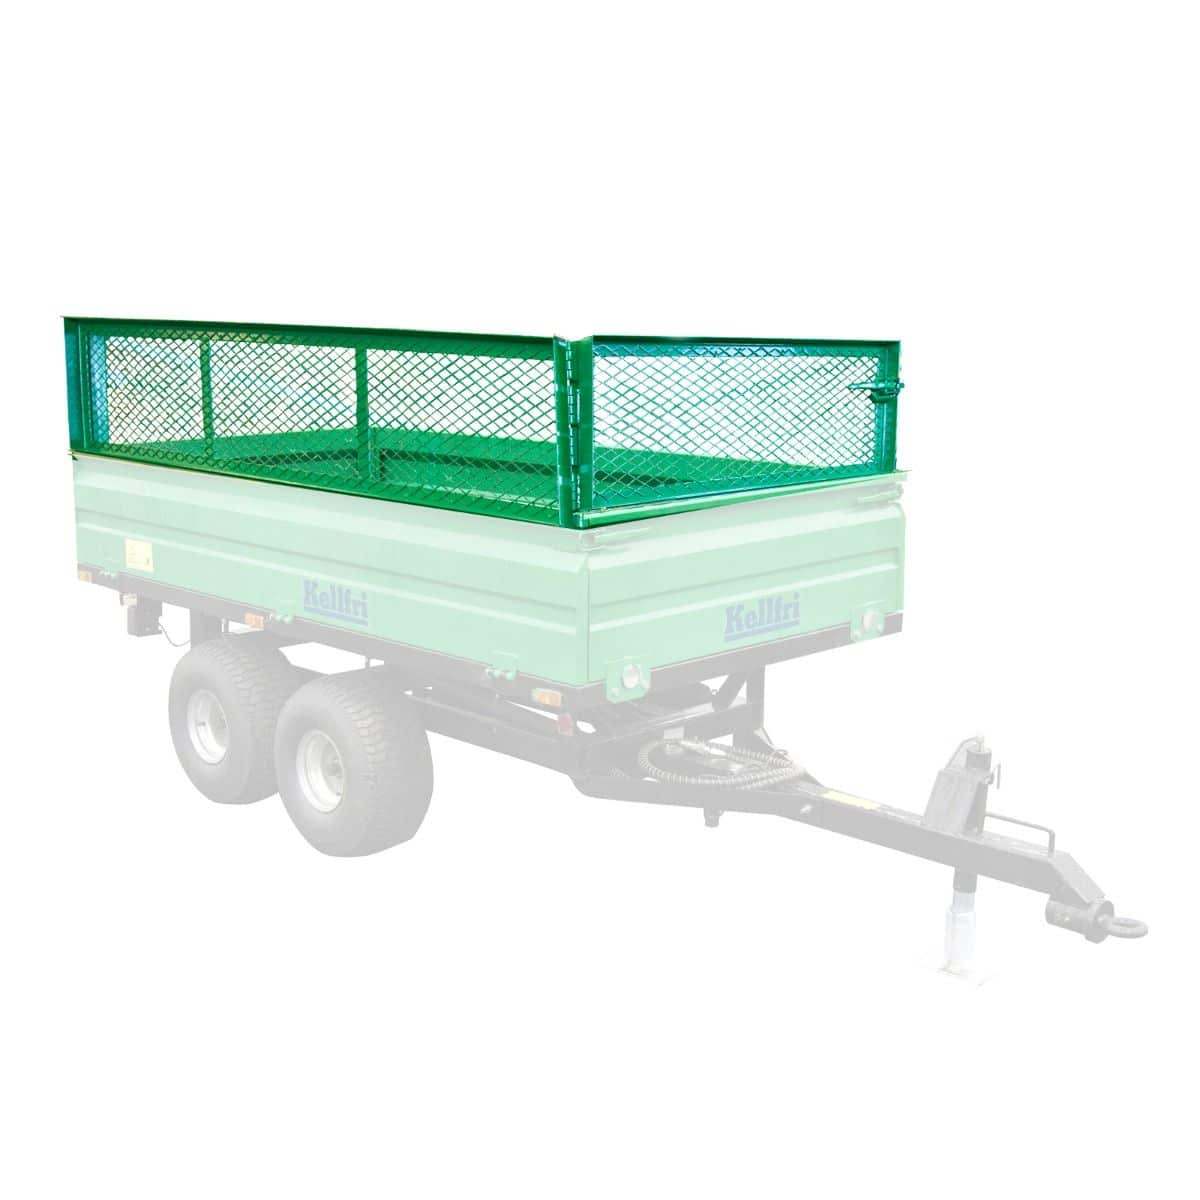 1.5T Trailer Mesh Extension SidesLearn More